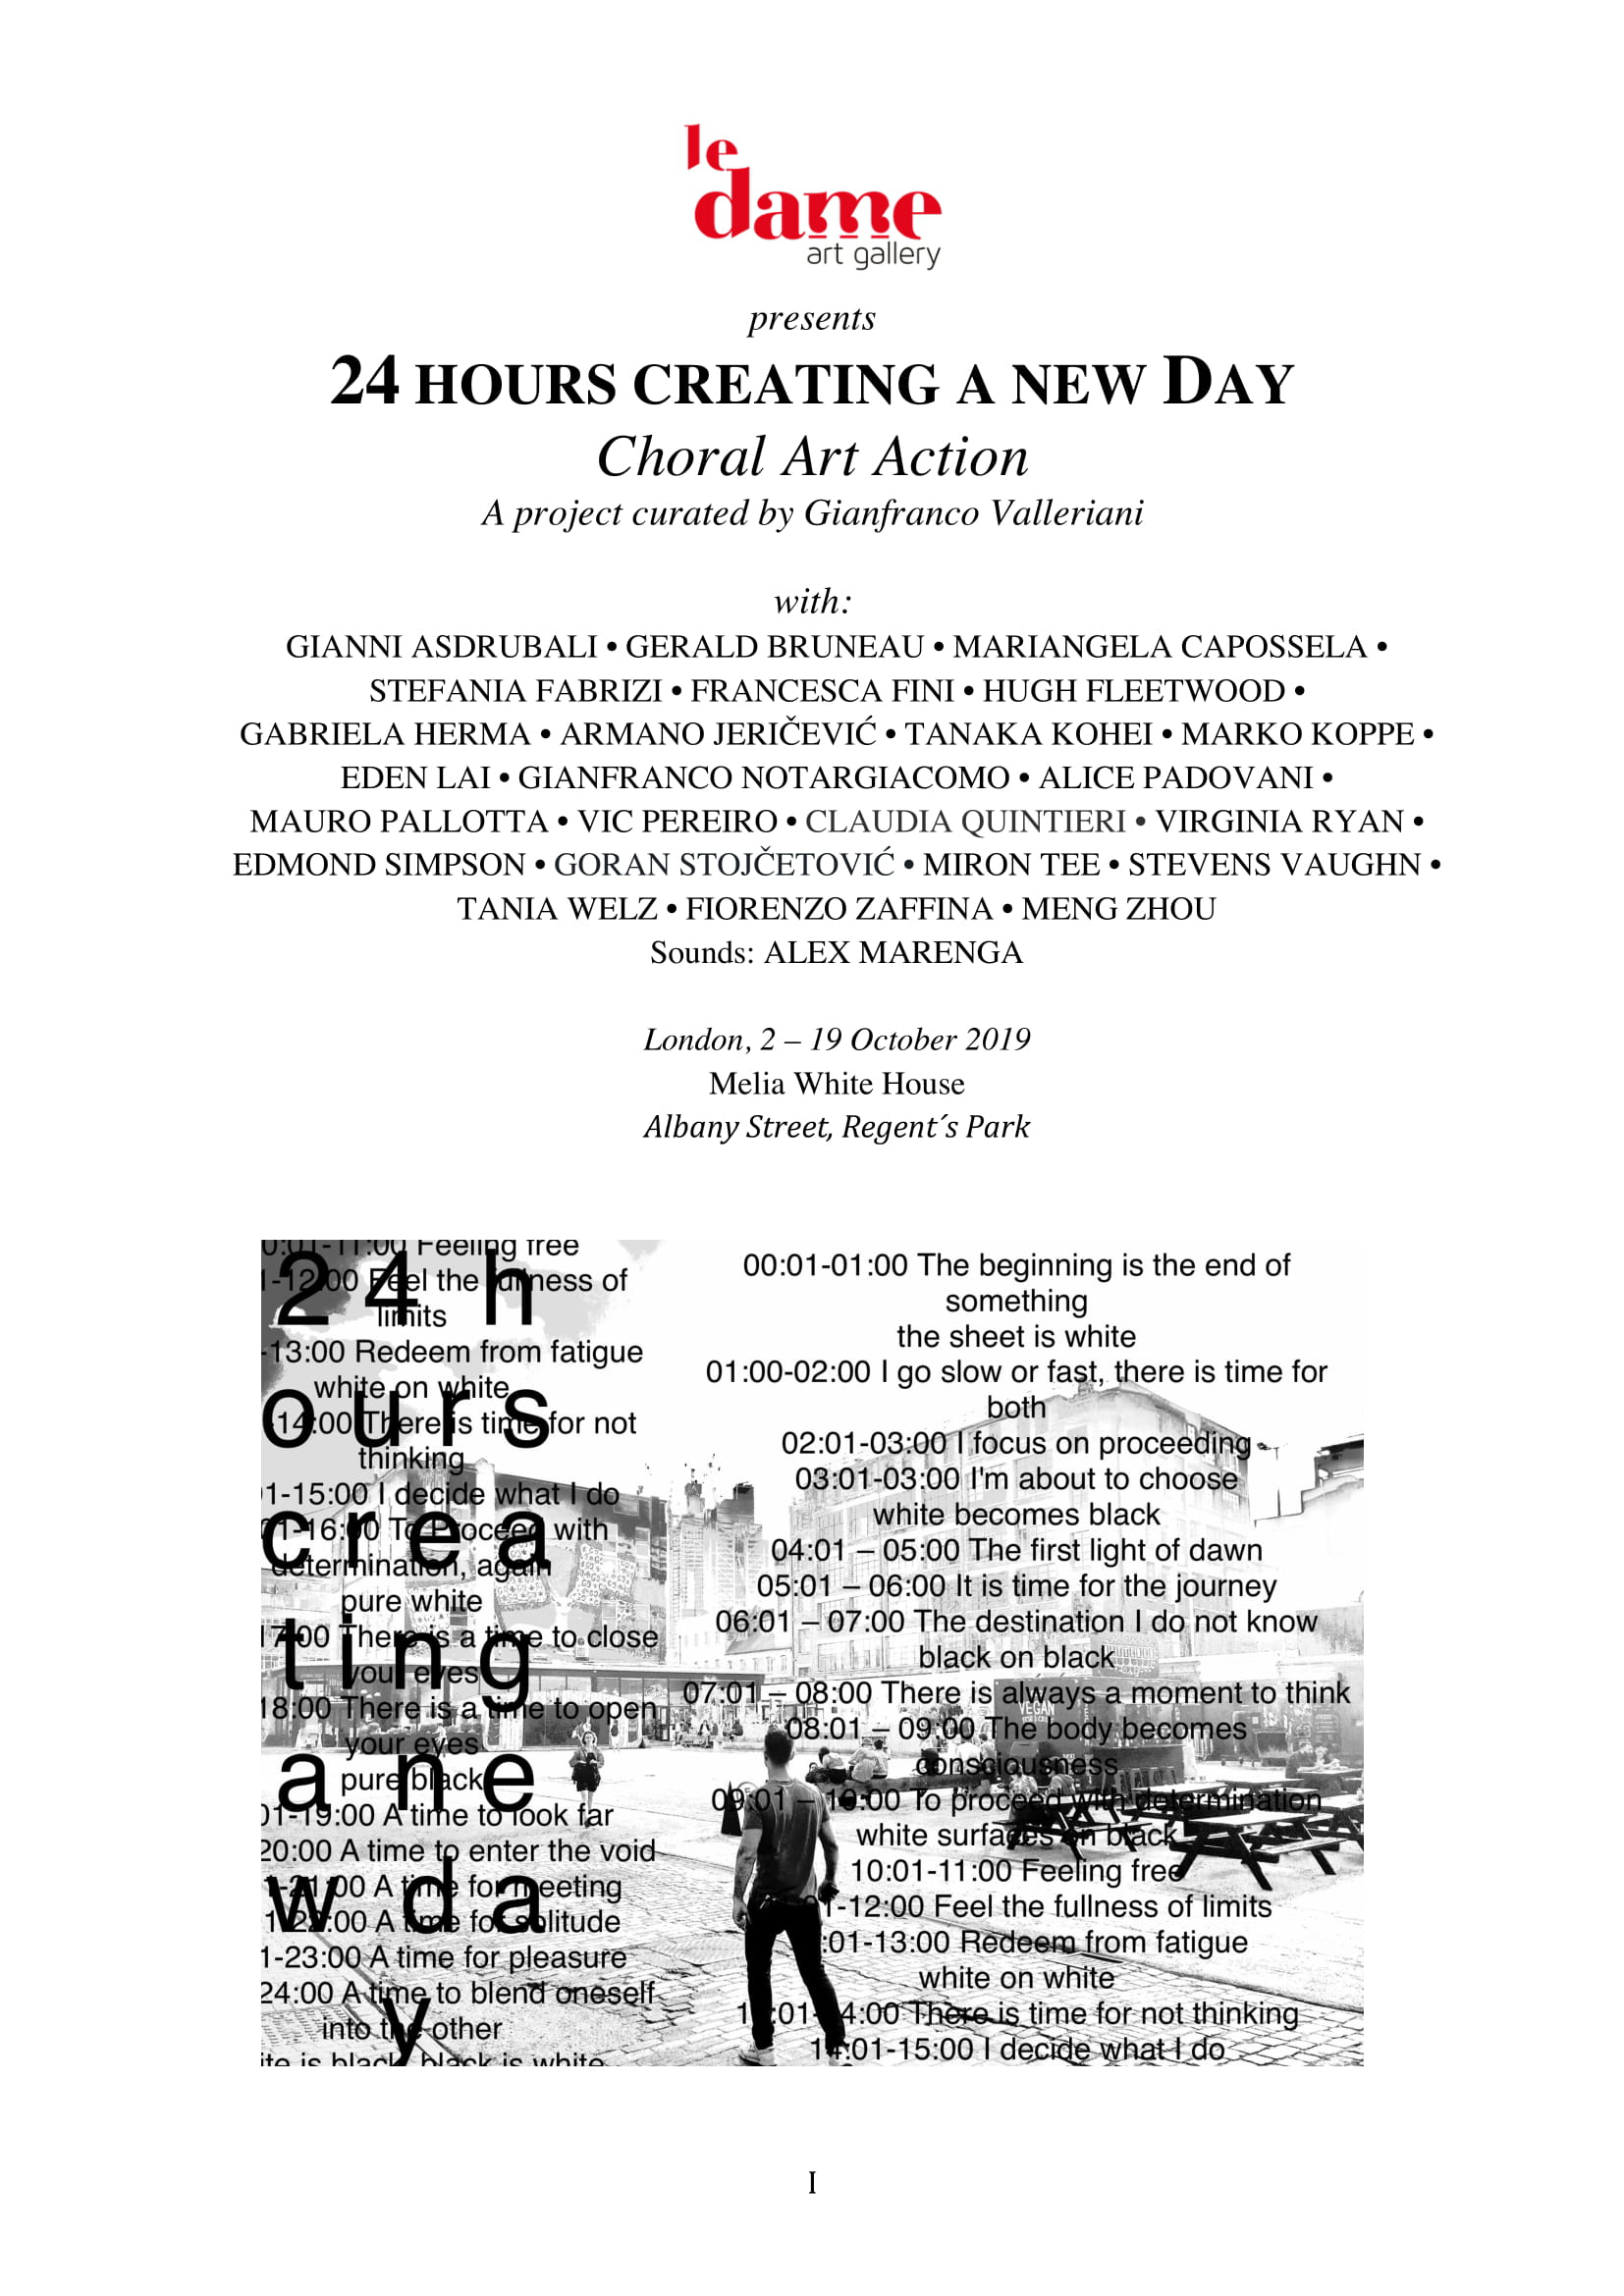 Amptek's music at 24 HOURS CREATING A NEW DAY (London)